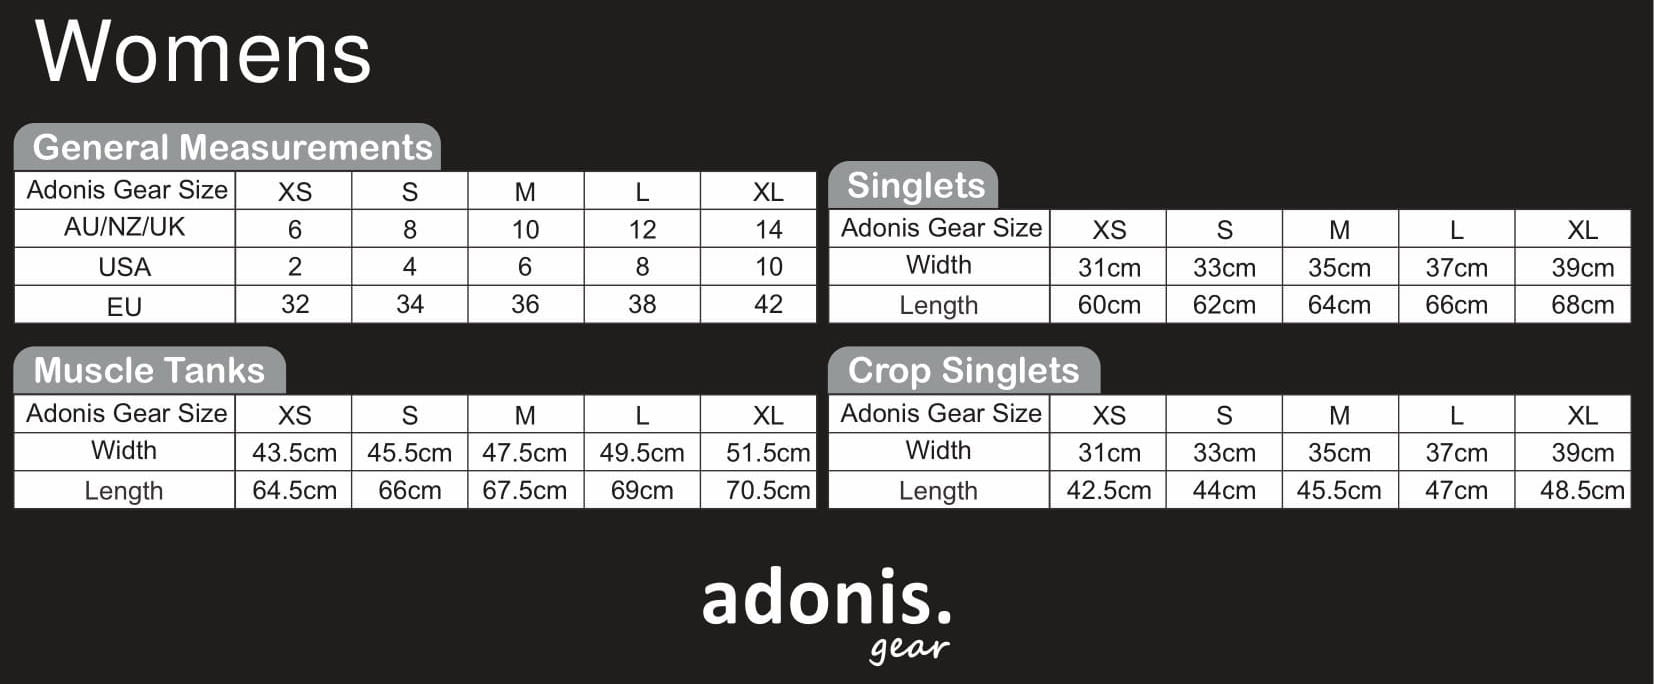 Adonis.Gear | Size Guide Women | Australia